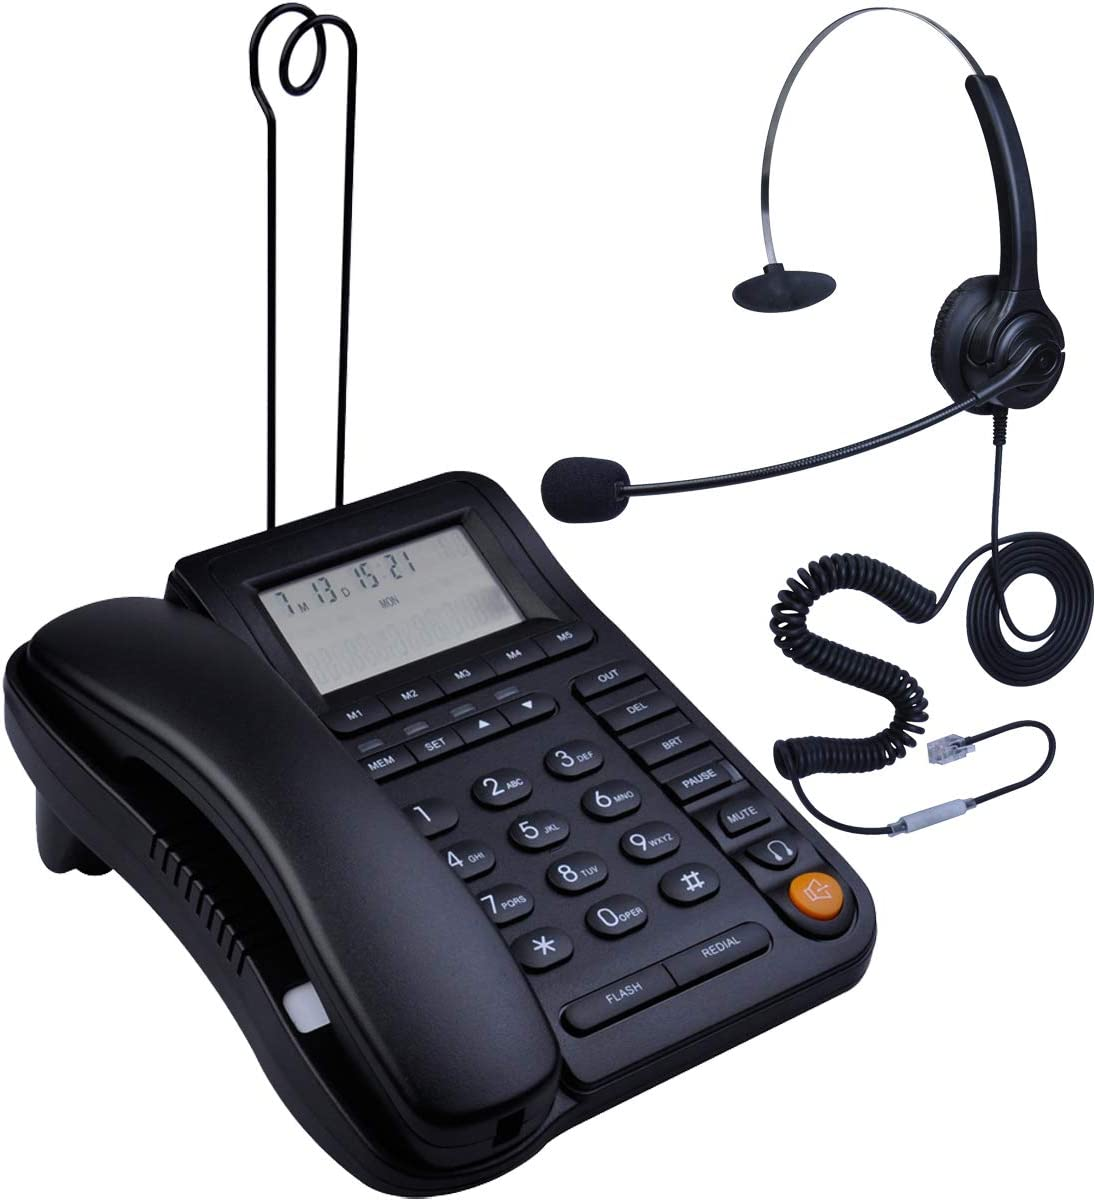 HePesTer P-017BN-2 Call Center Corded Phone with Headset Caller ID Speakerphone Home Office Landline Telephone